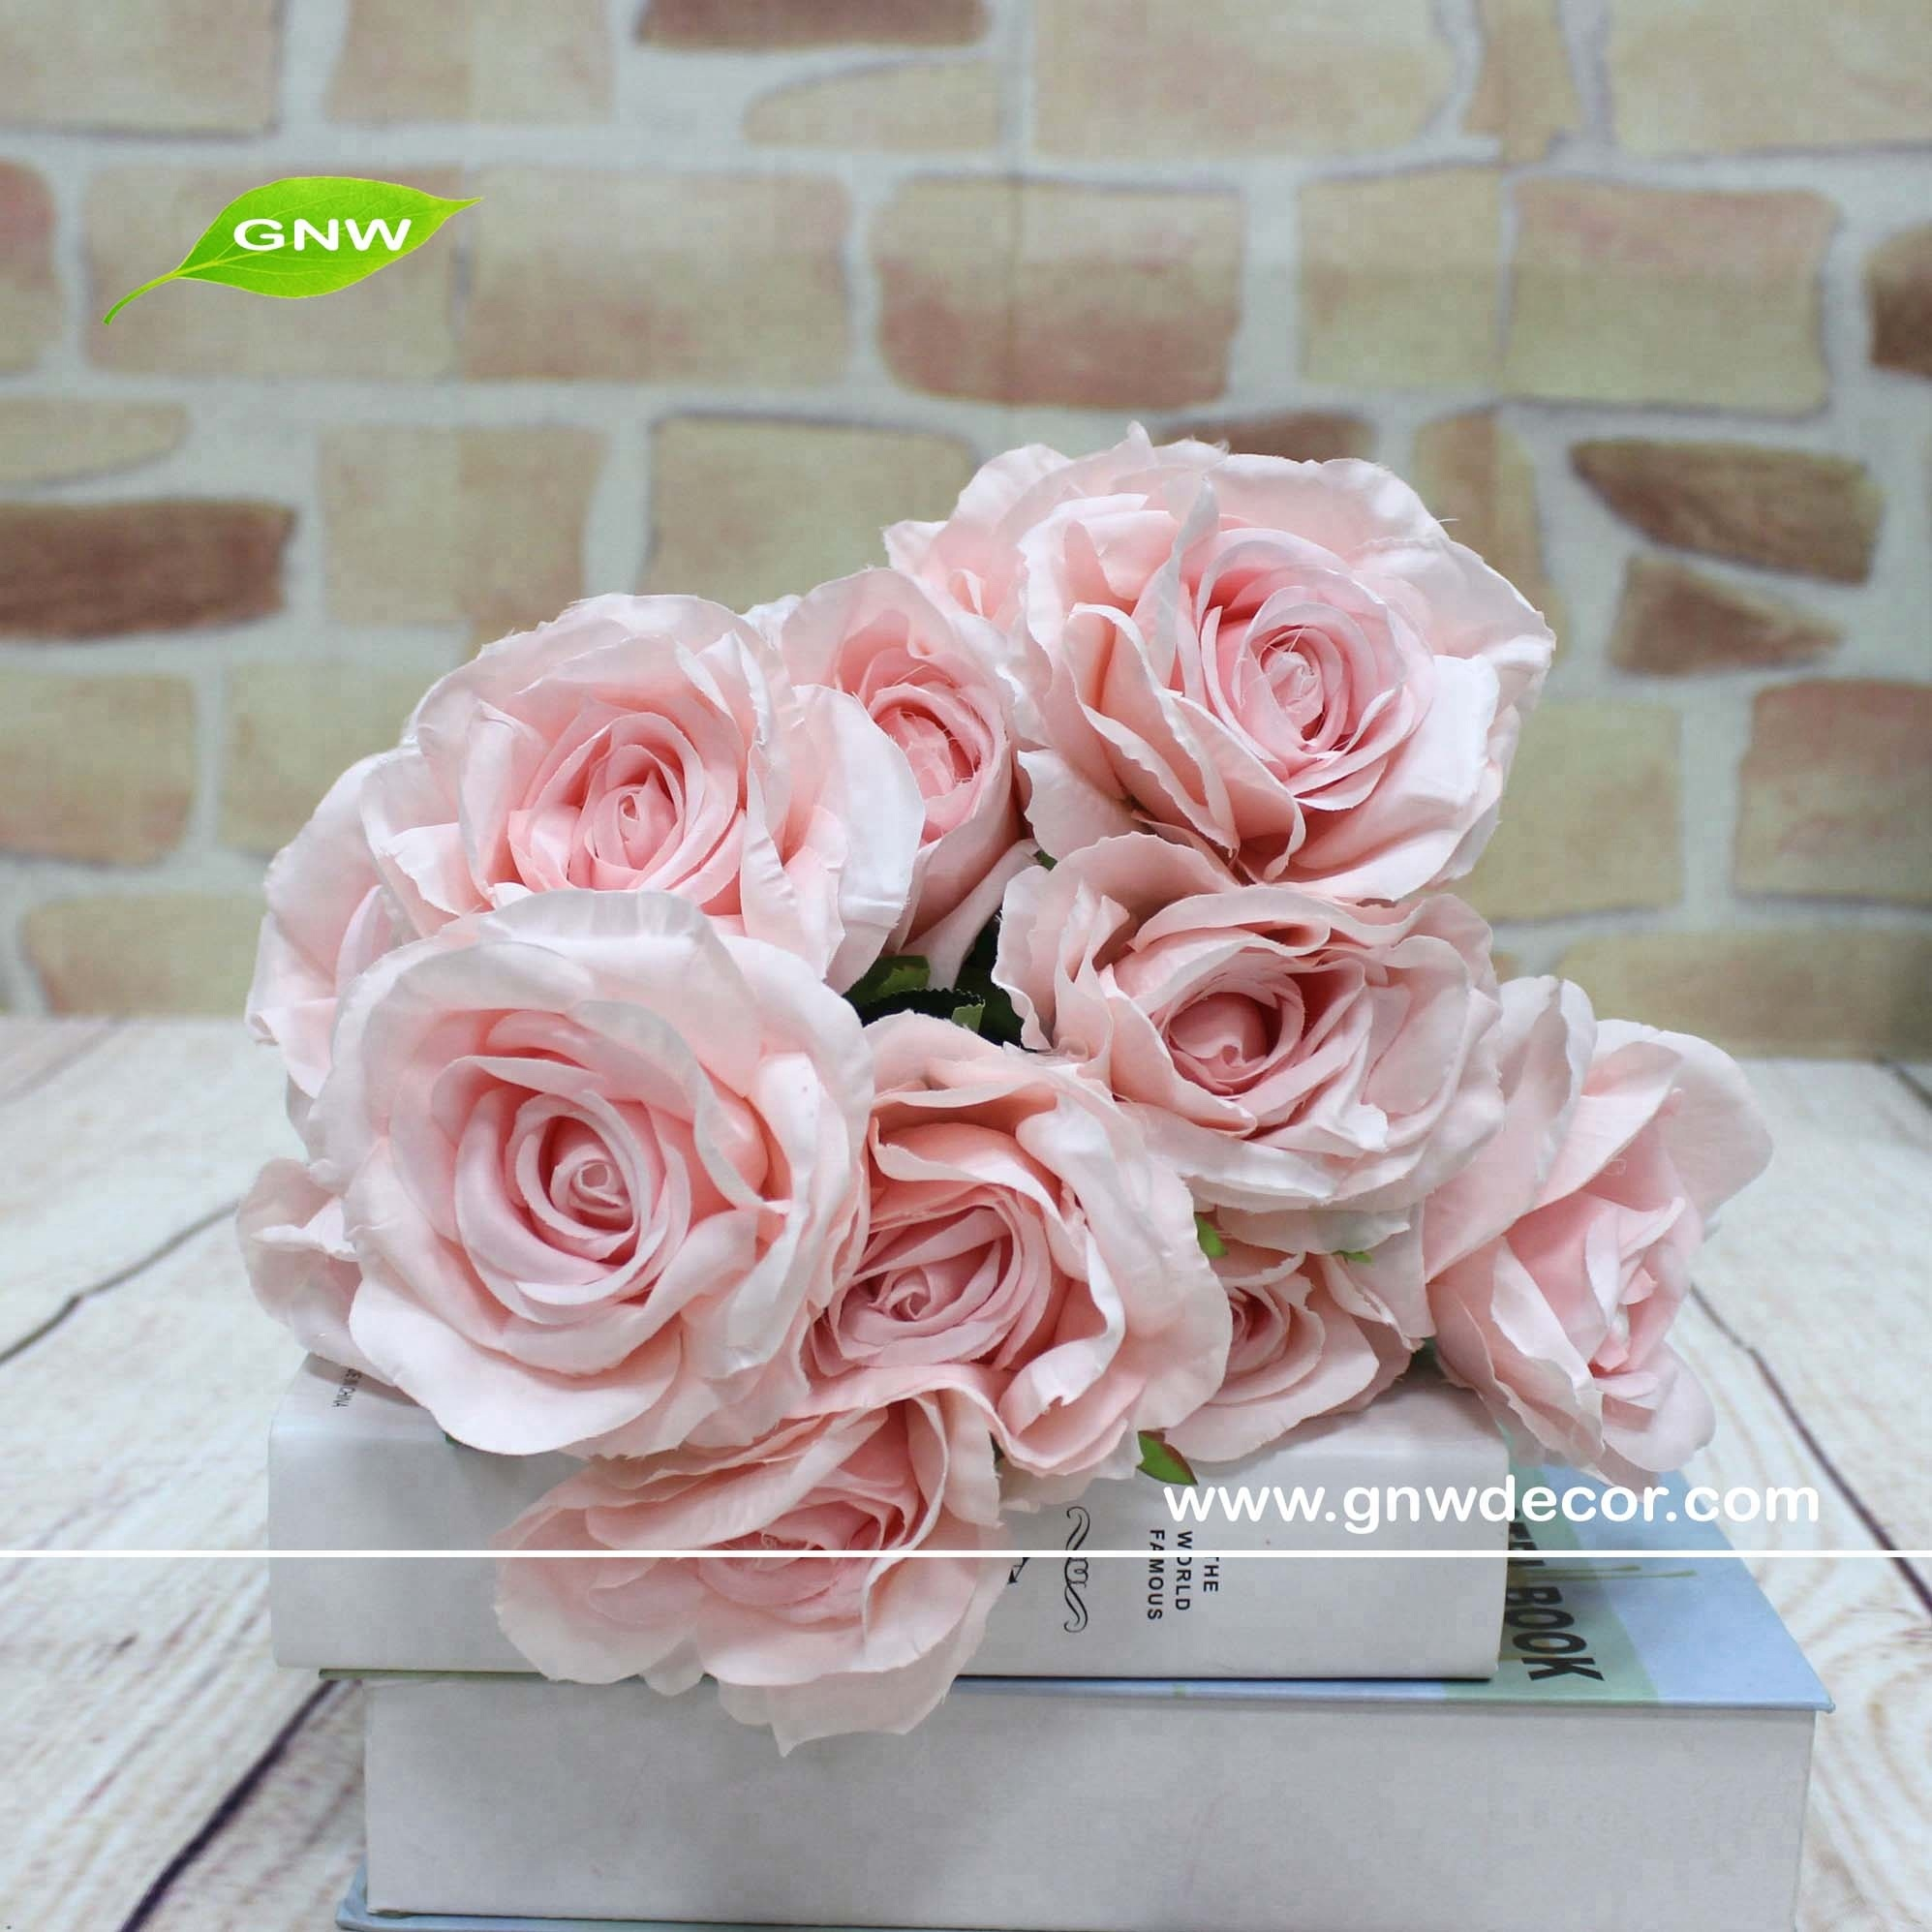 Bouquet Artificial Flower, Bouquet Artificial Flower Suppliers and ...